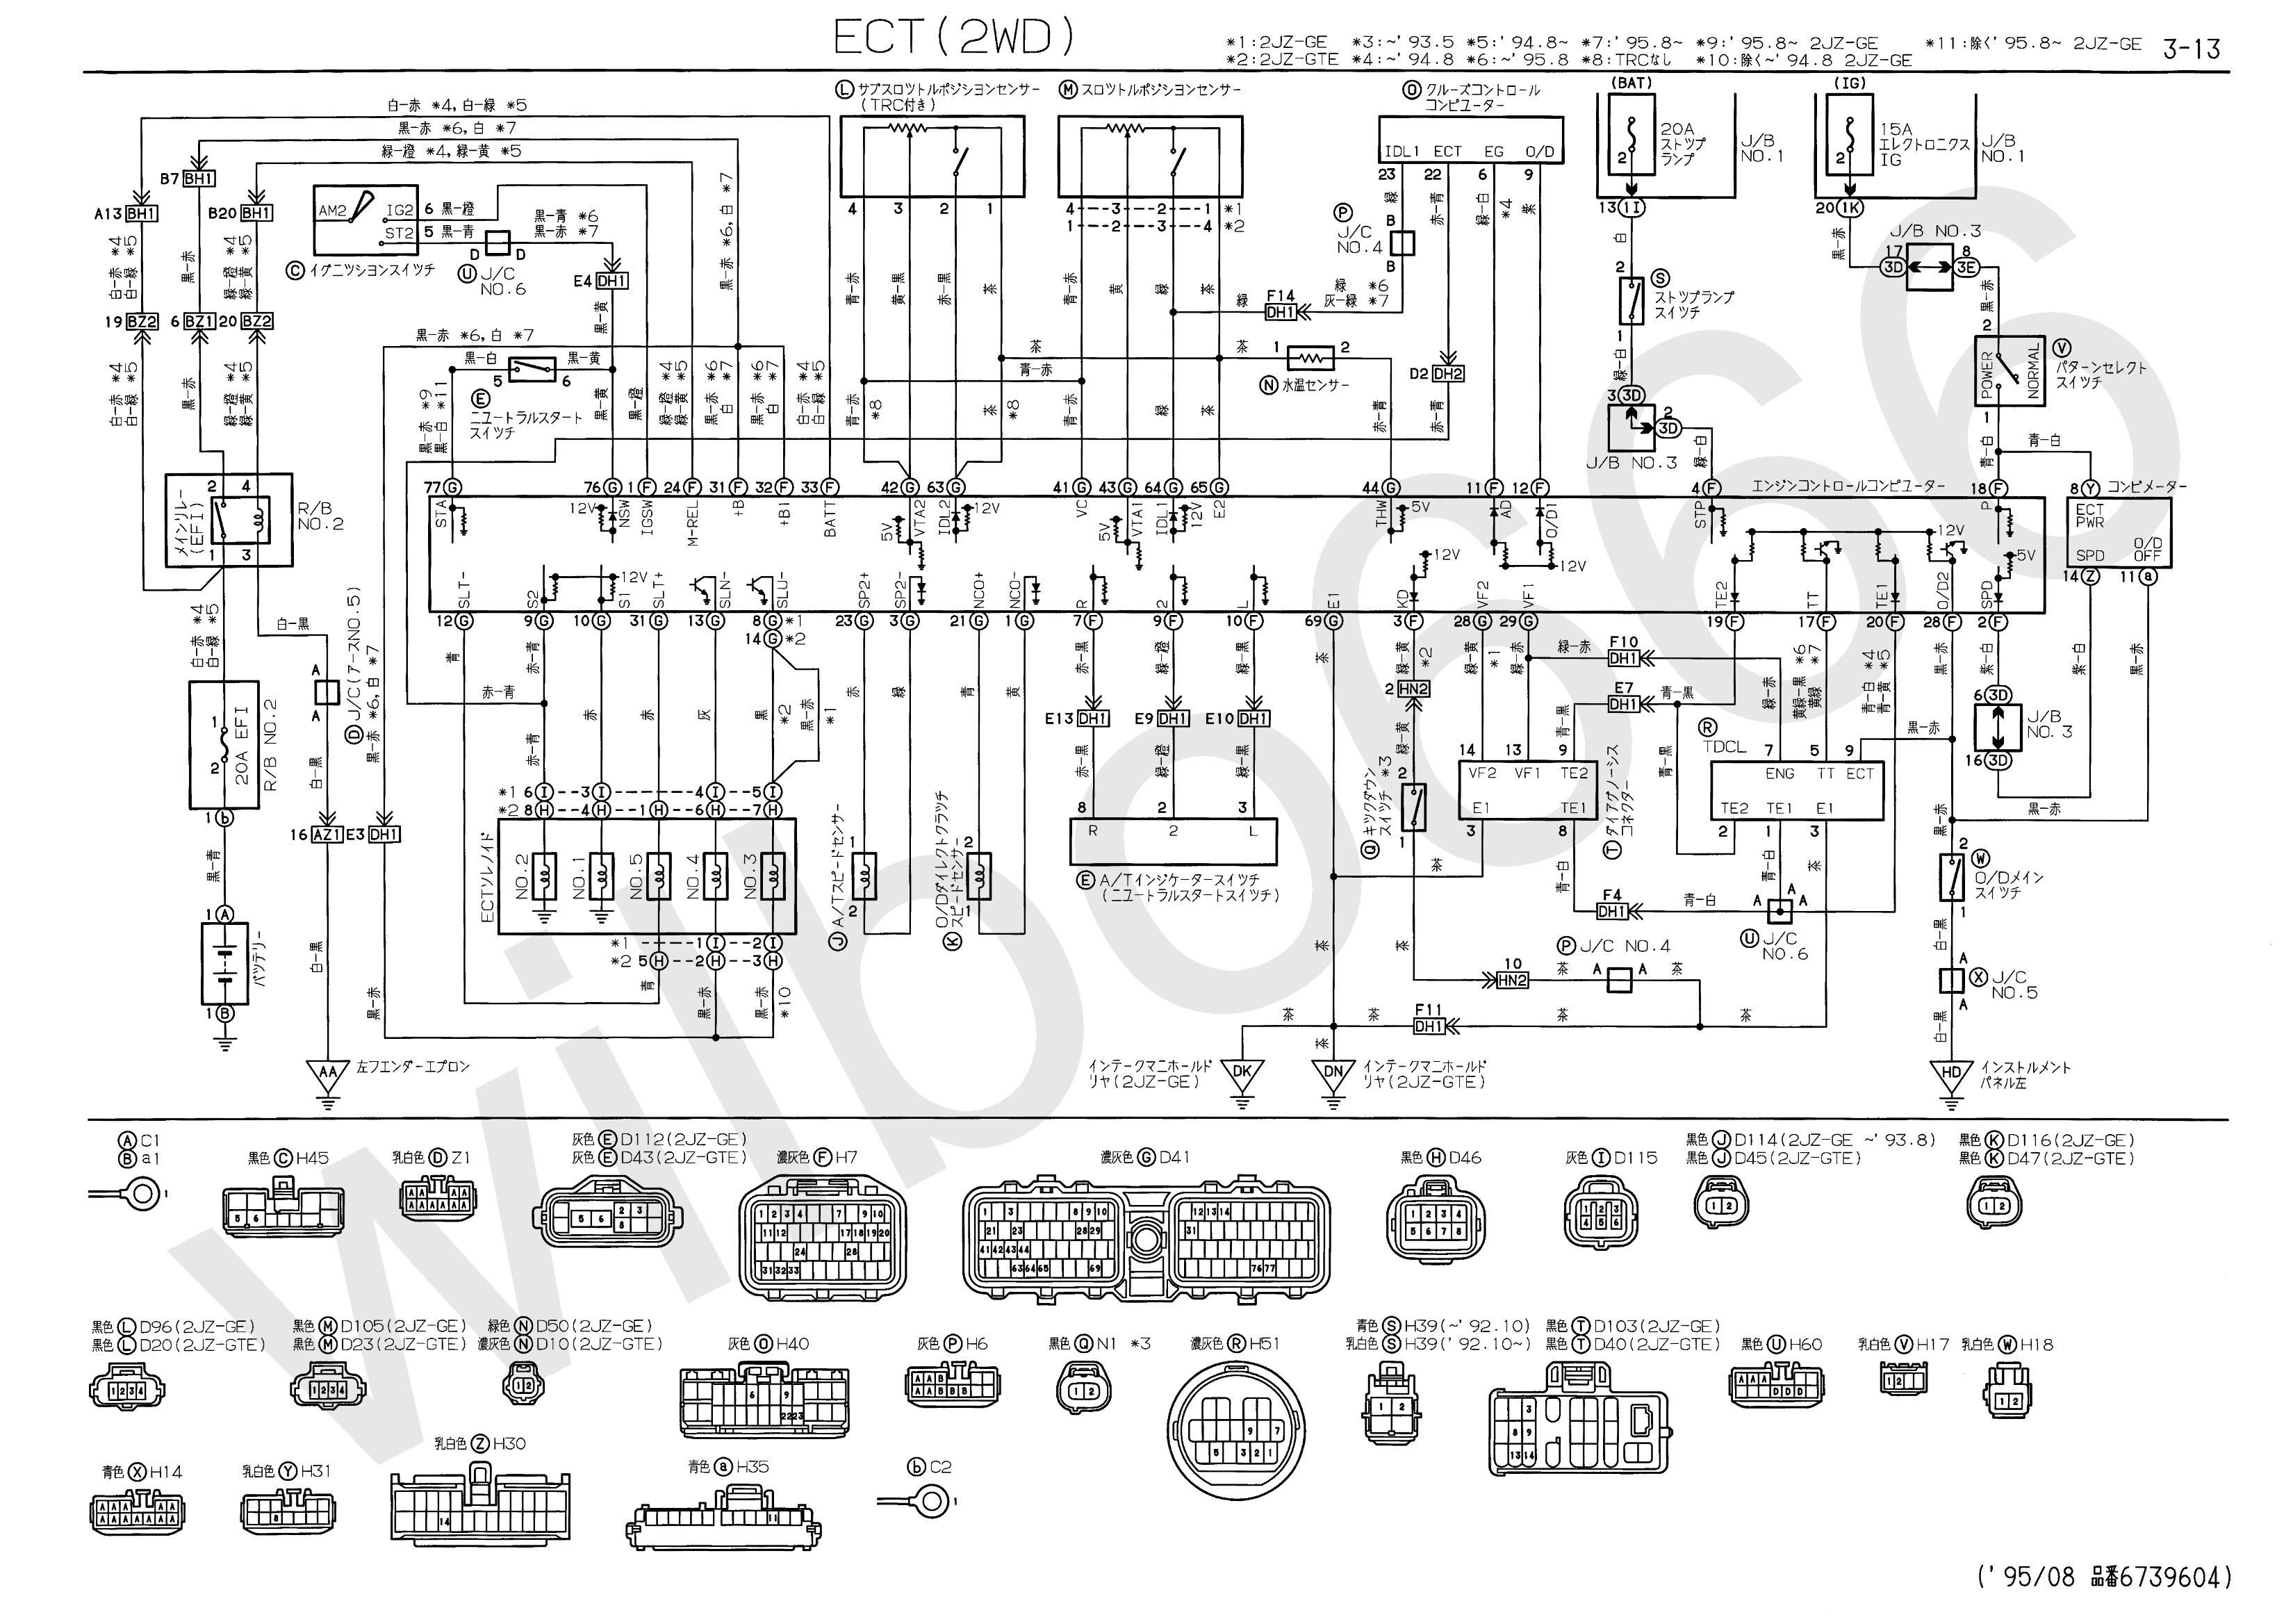 1985 Toyota Mr2 Wiring Diagram Compustar 85 Best Library Pickup Download Diagrams Scematictoyota Third Level 89